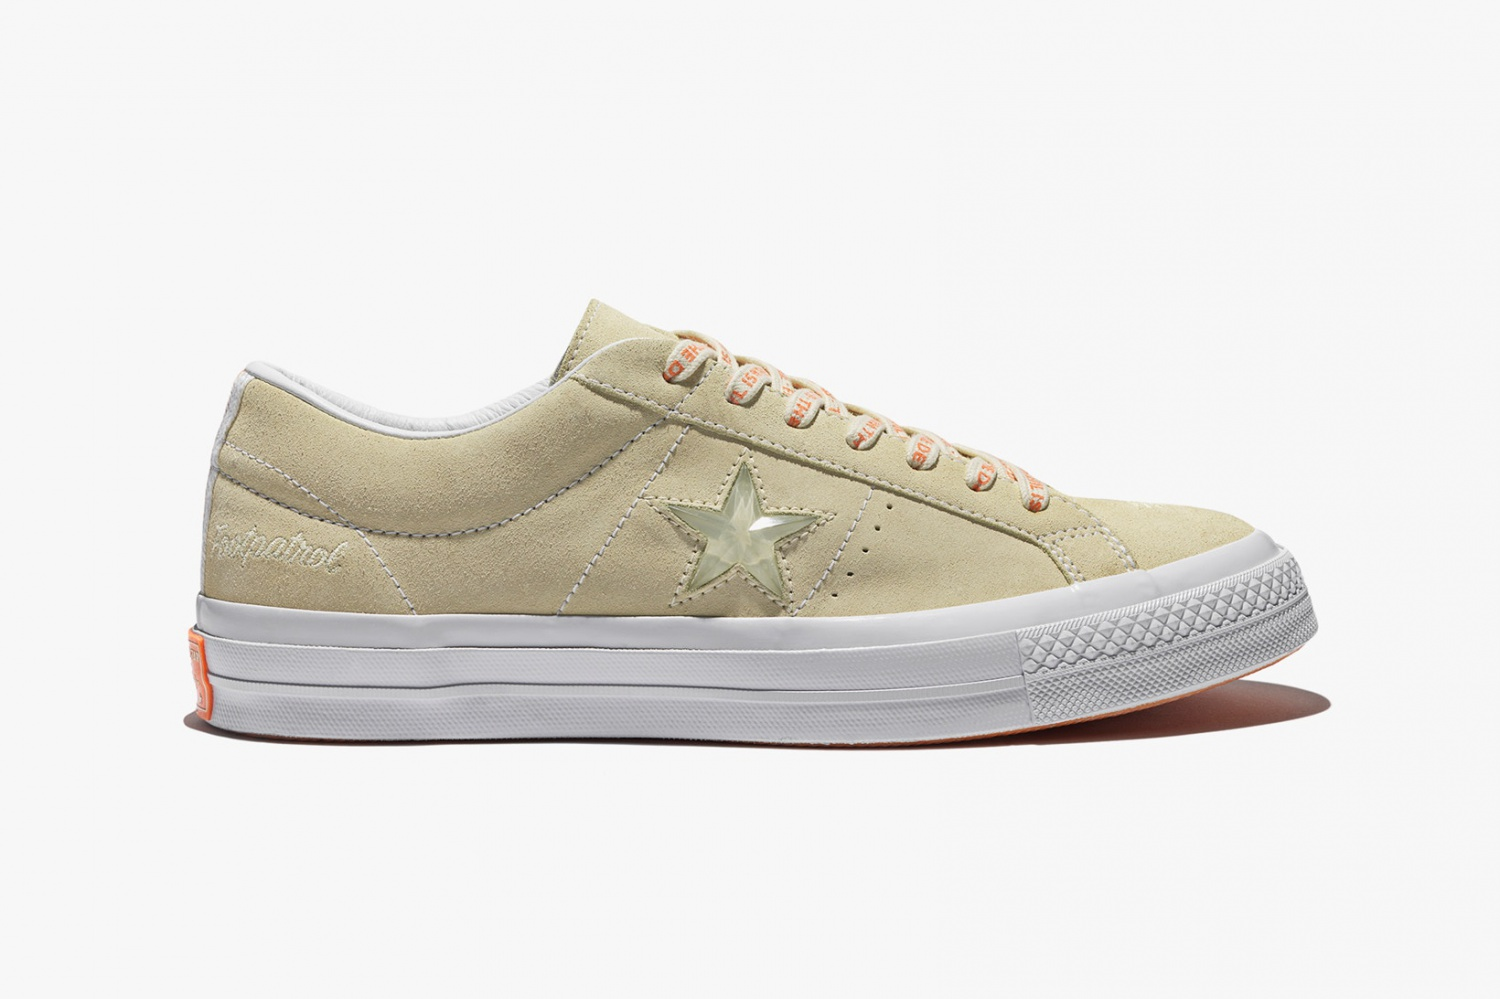 Converse and Footpatrol Collaboration Results - Converse One Star's New Street Style